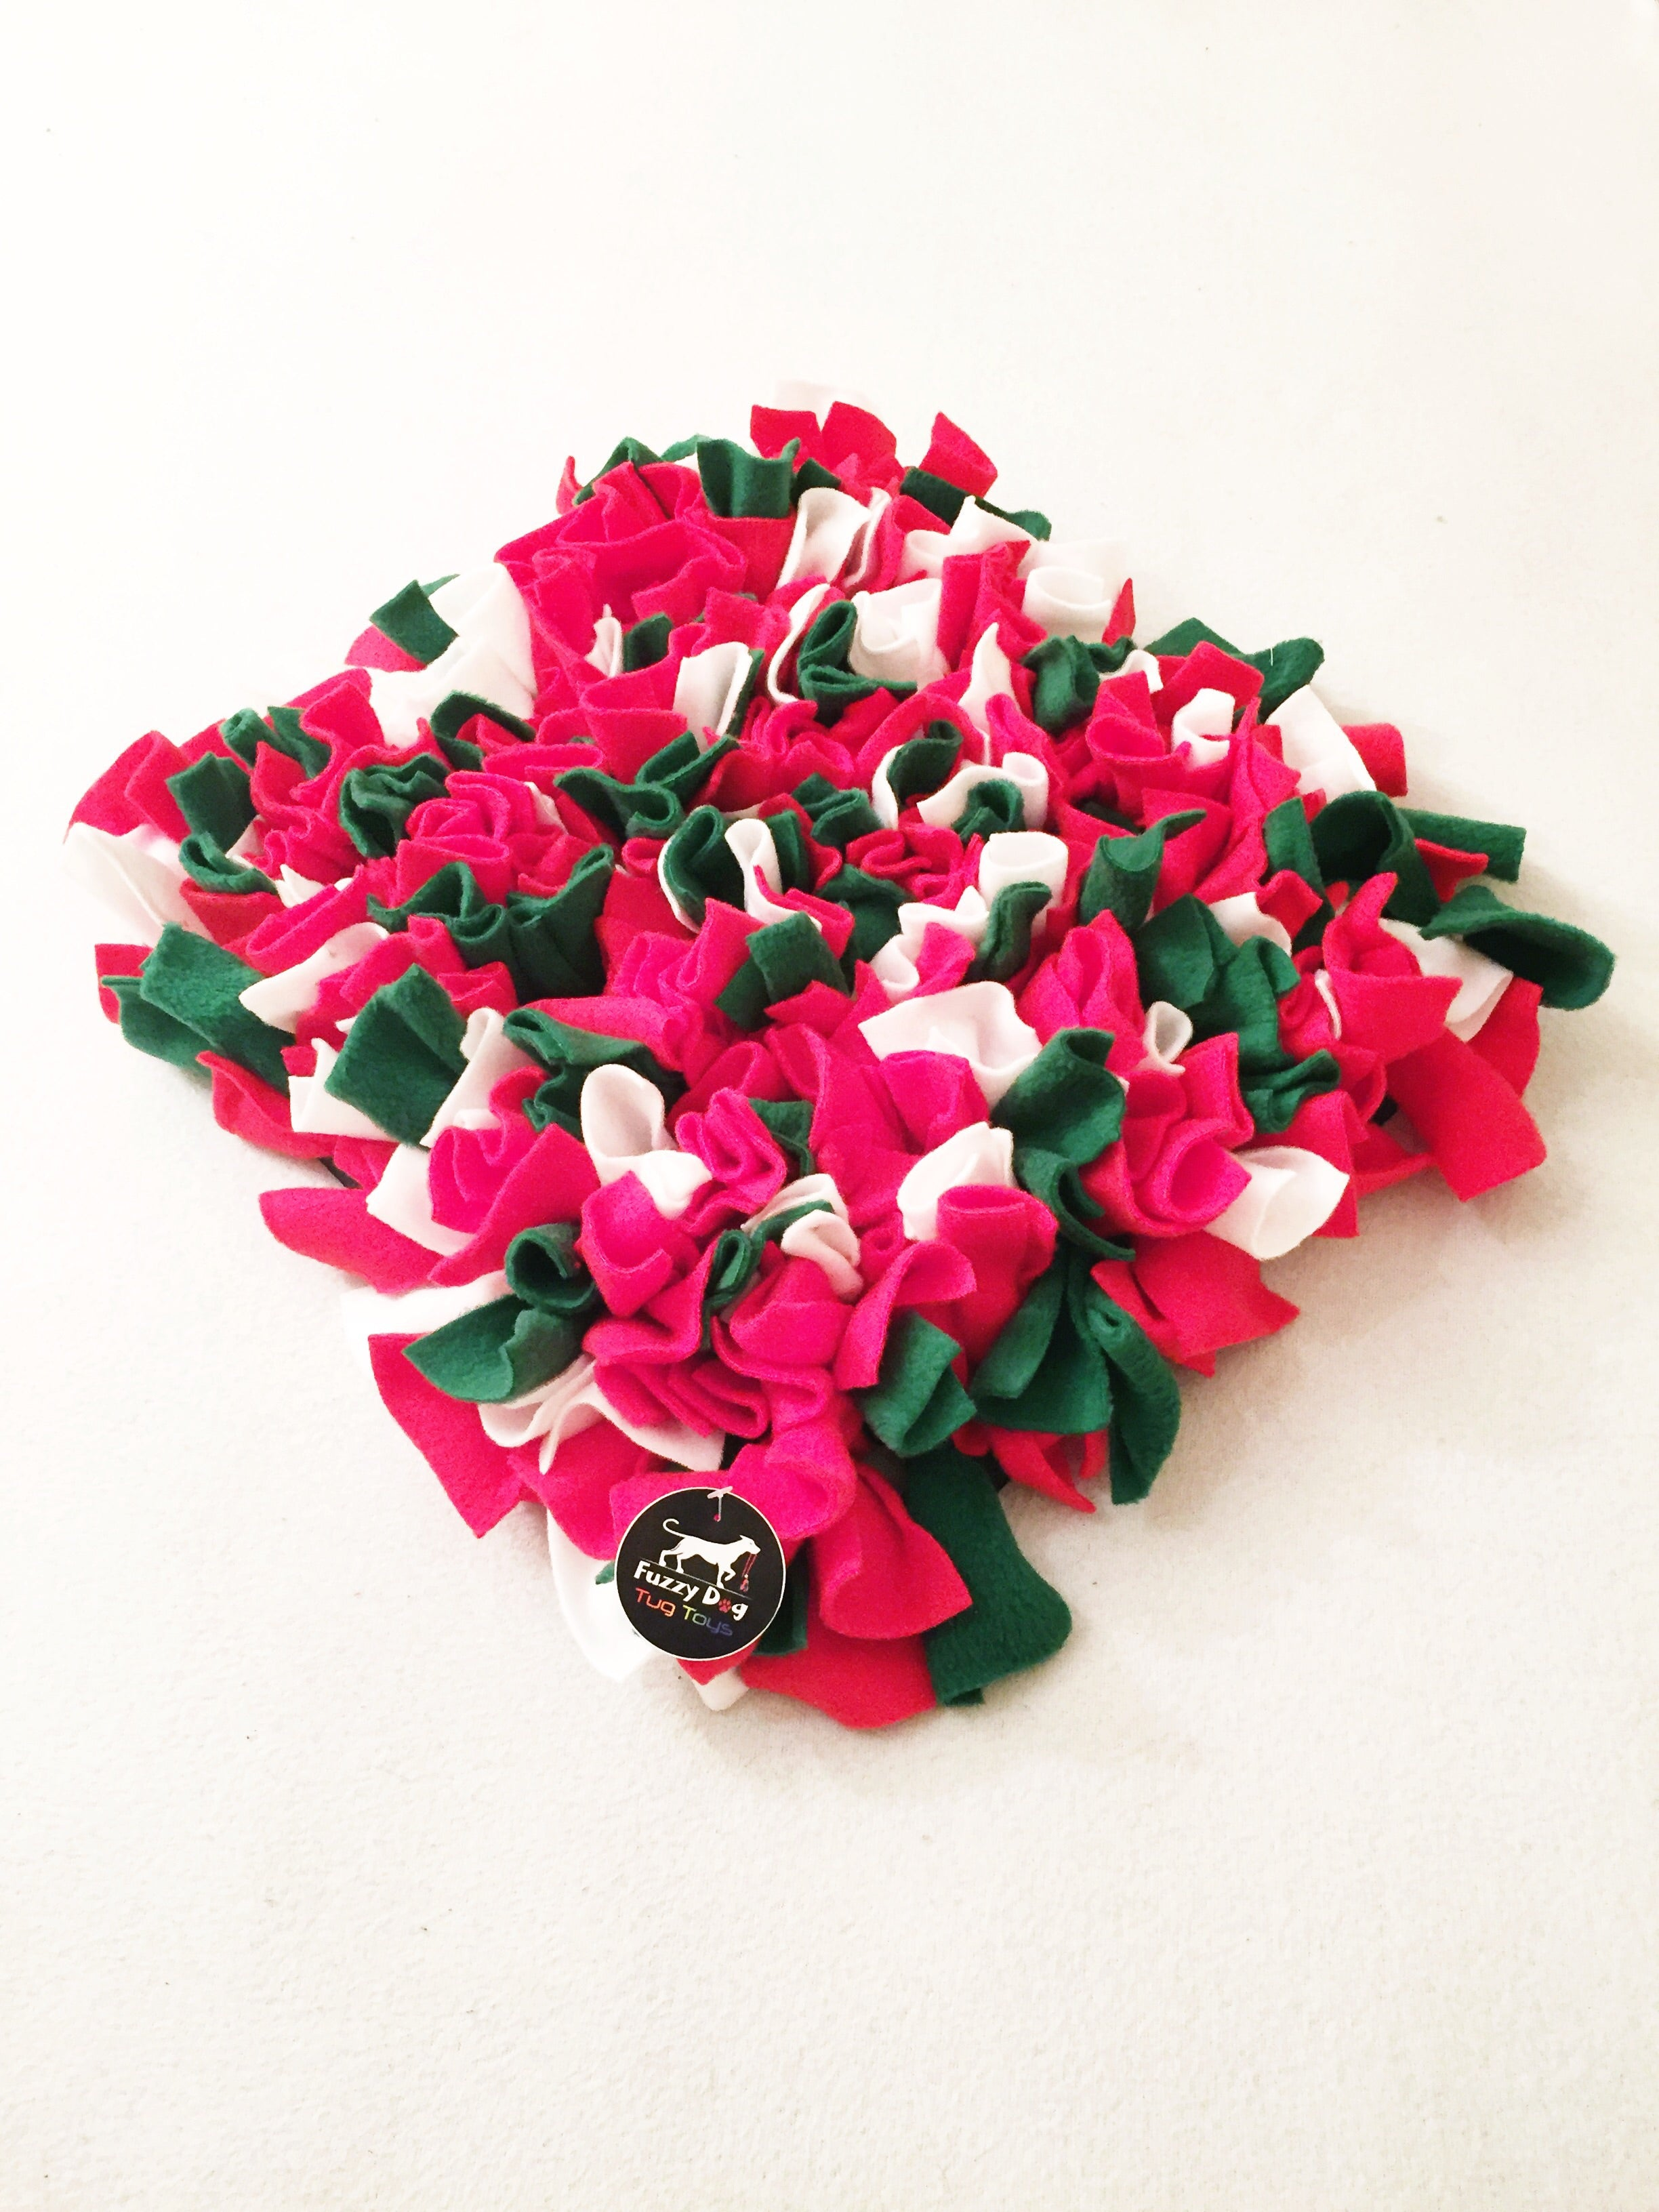 Christmas Fuzzy Dog Snuffle Mat